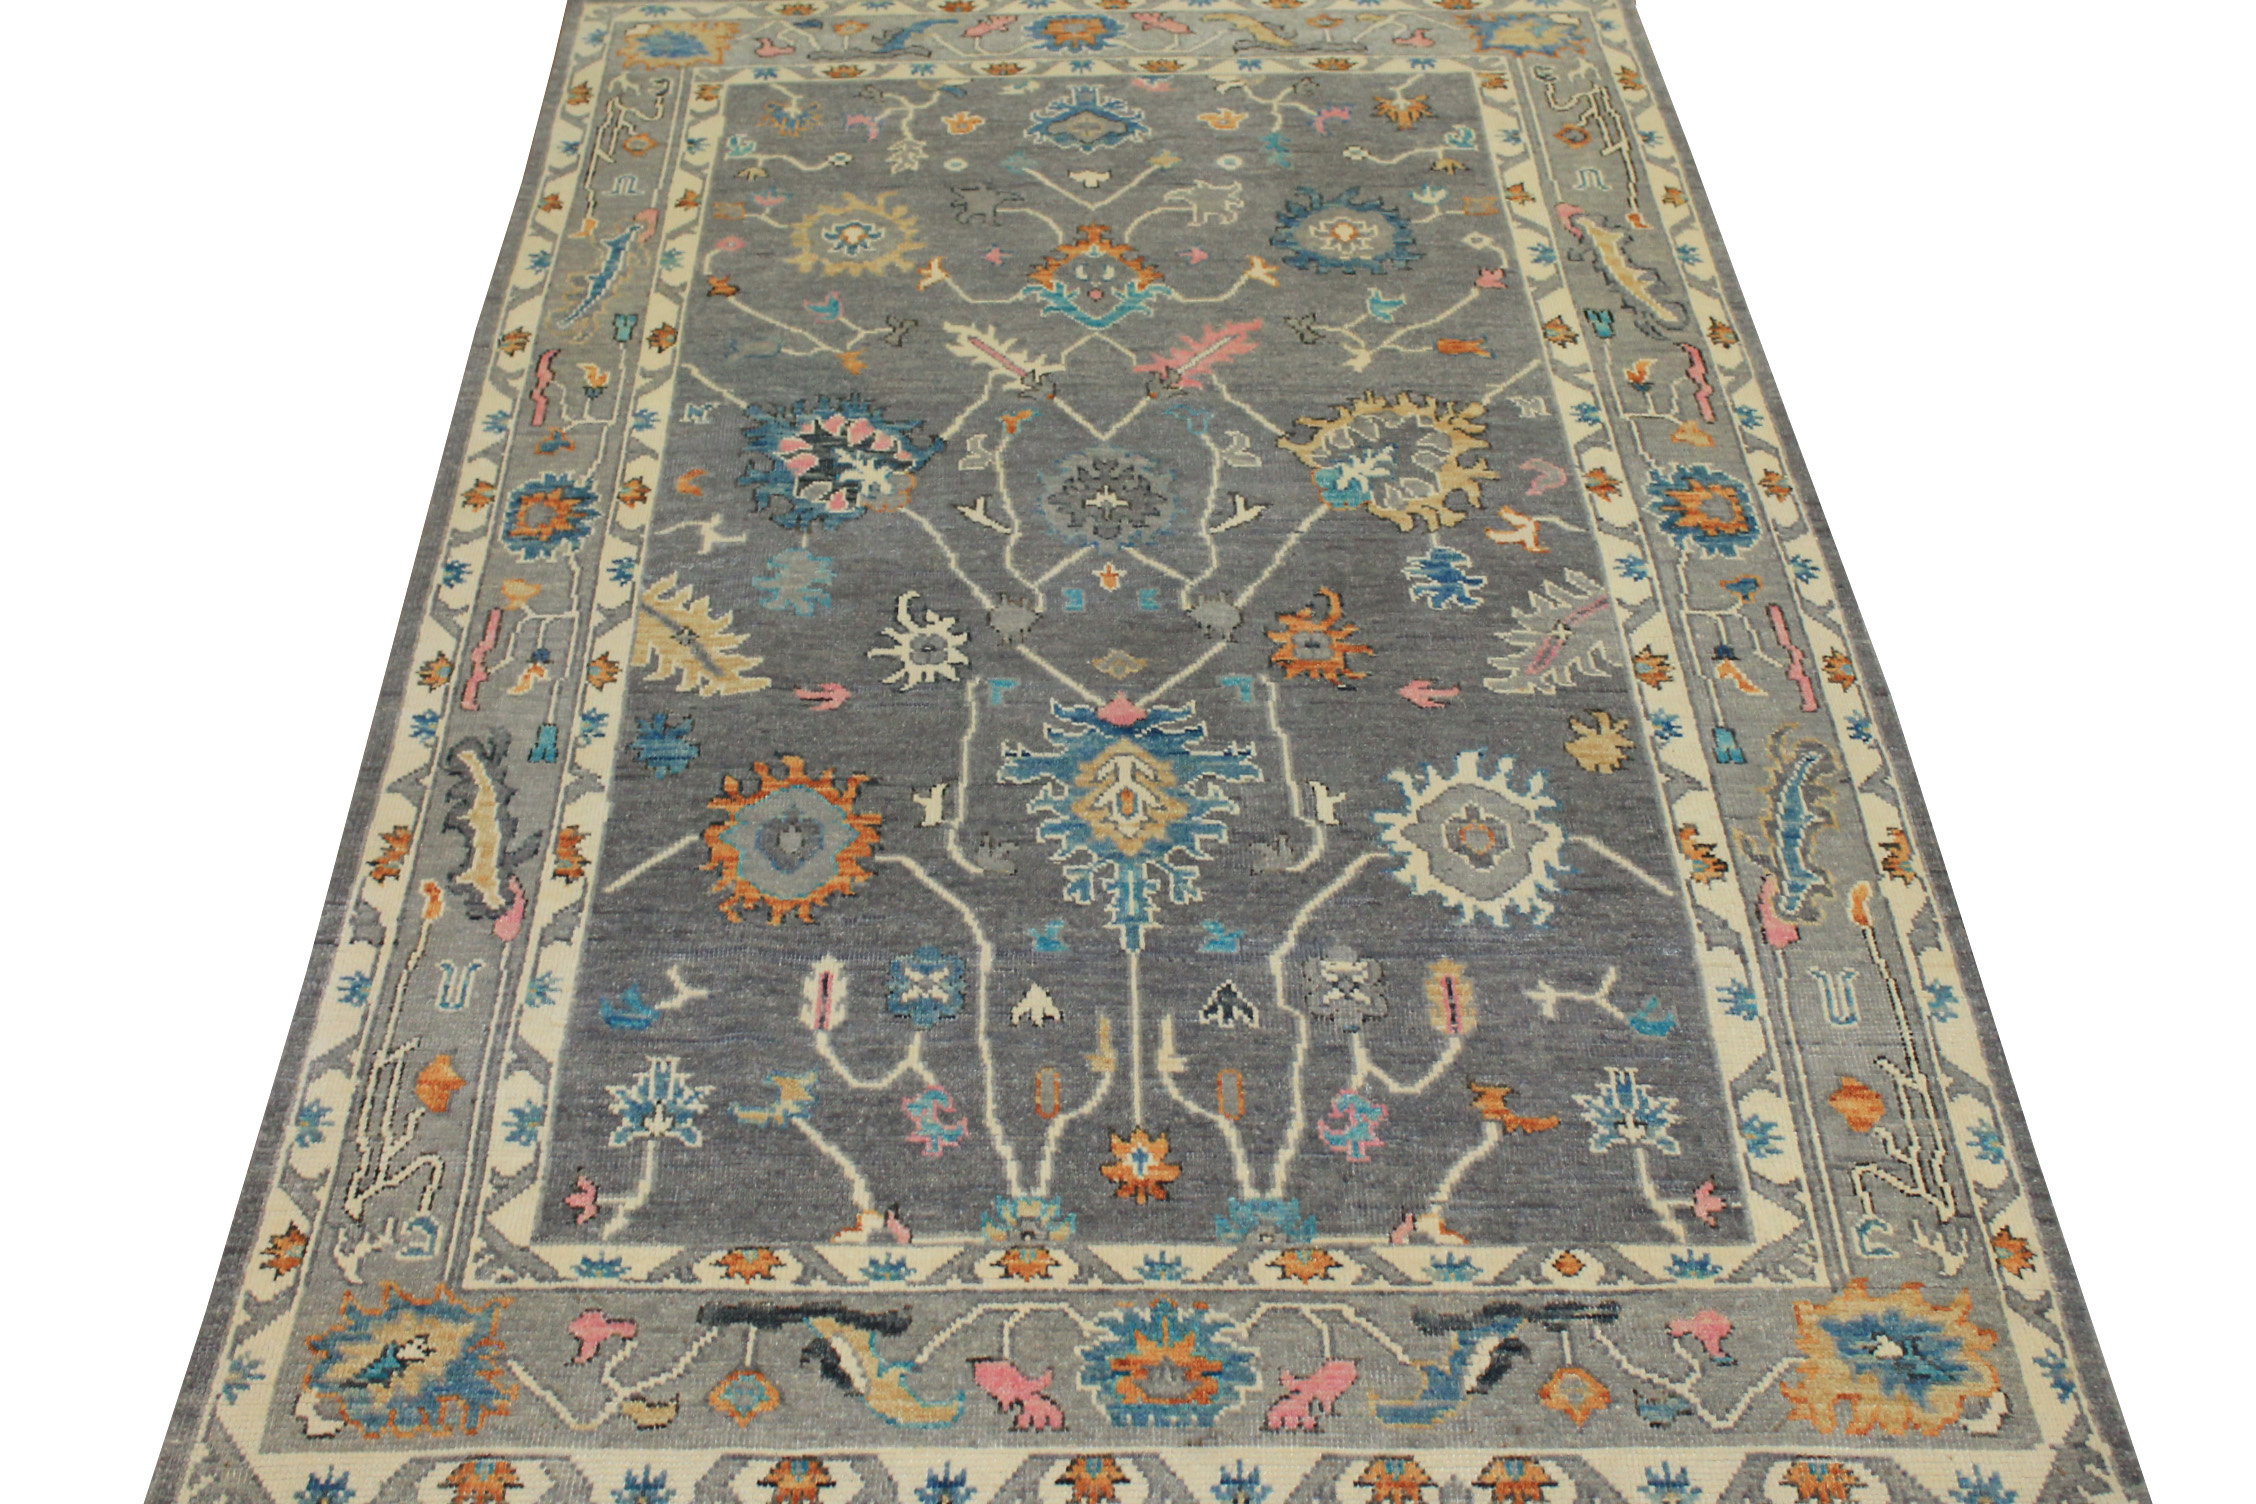 6x9 Oushak Hand Knotted Wool Area Rug - MR024412